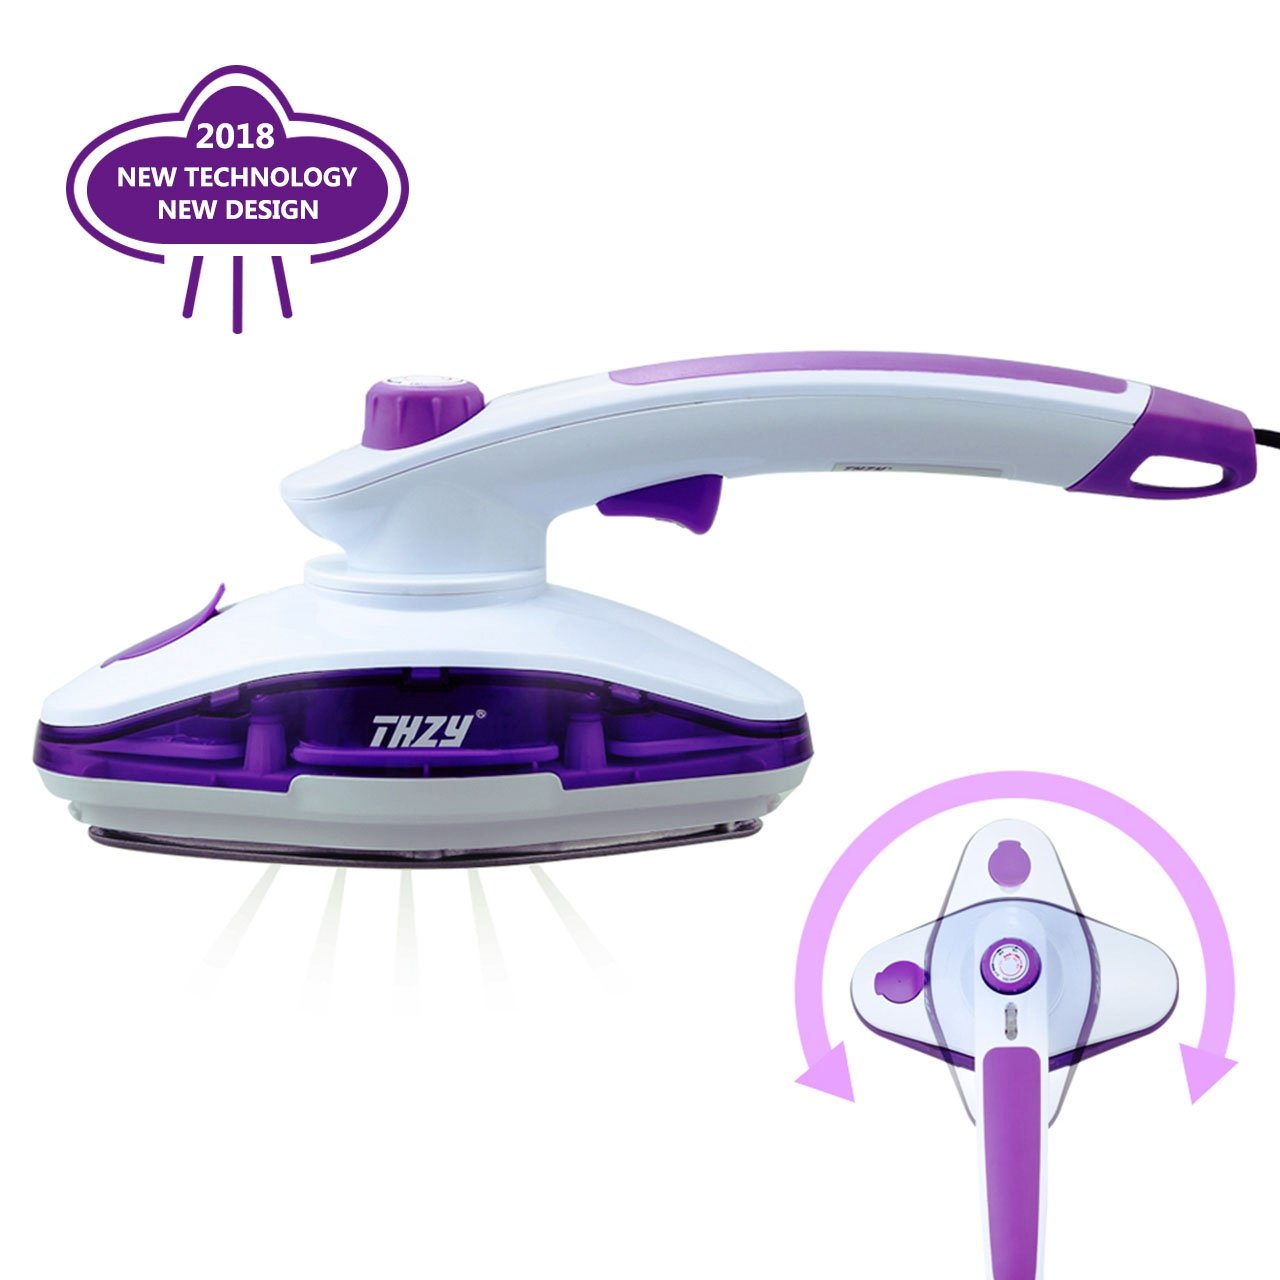 THZY Handheld Garment Fabric Dual-use for Steamer Best Fast Heat-up Portable Steam Iron Wrinkle Release with Adjustable Temperature Button for Home and Travel, 2 Years Warranty